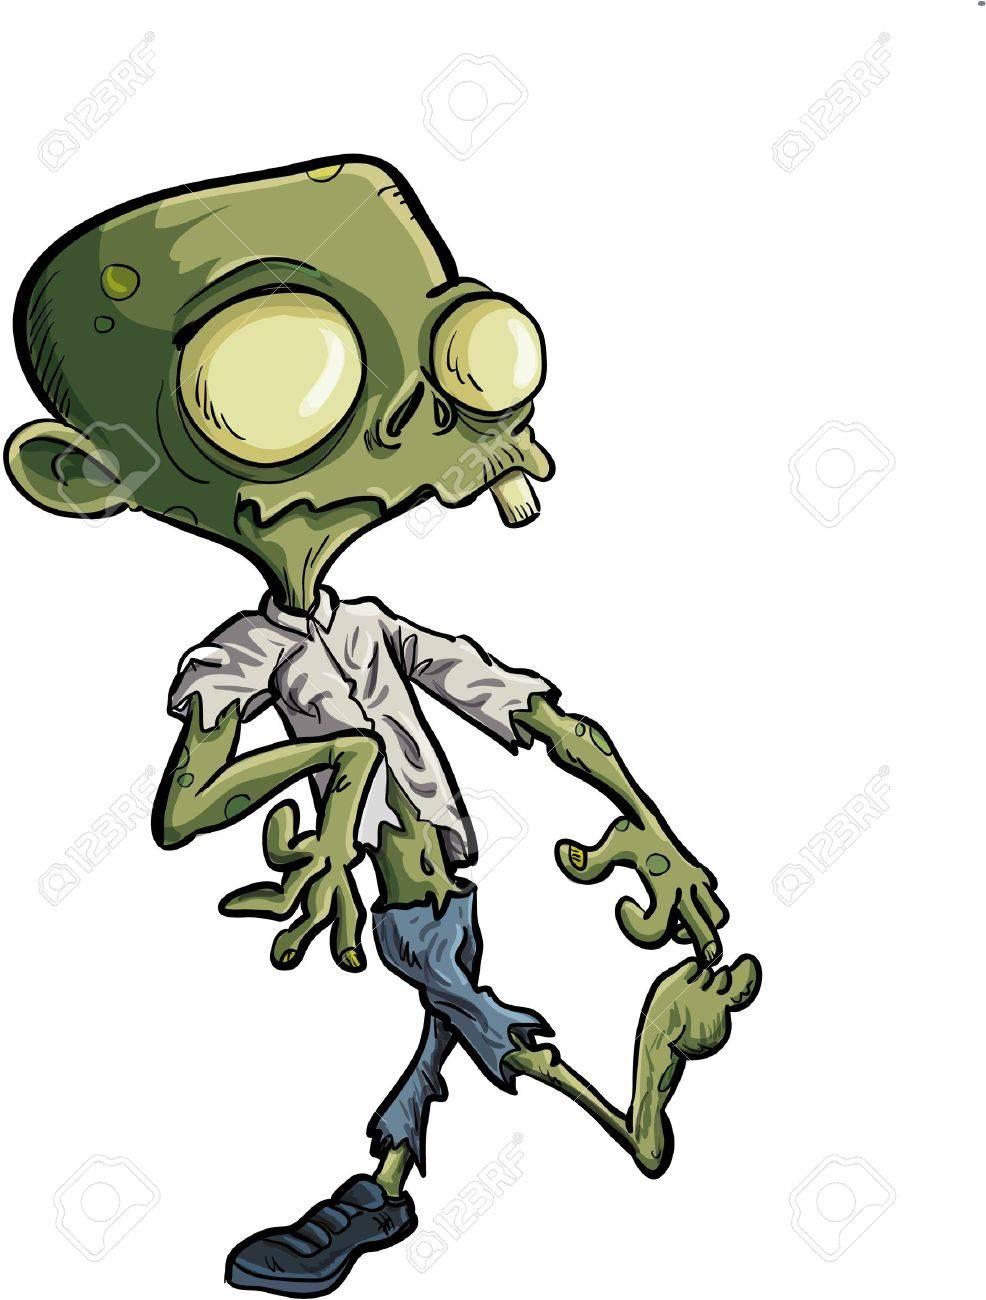 Cartoon Zombie With Huge Eyes Ripped Clothes Royalty Free Cliparts